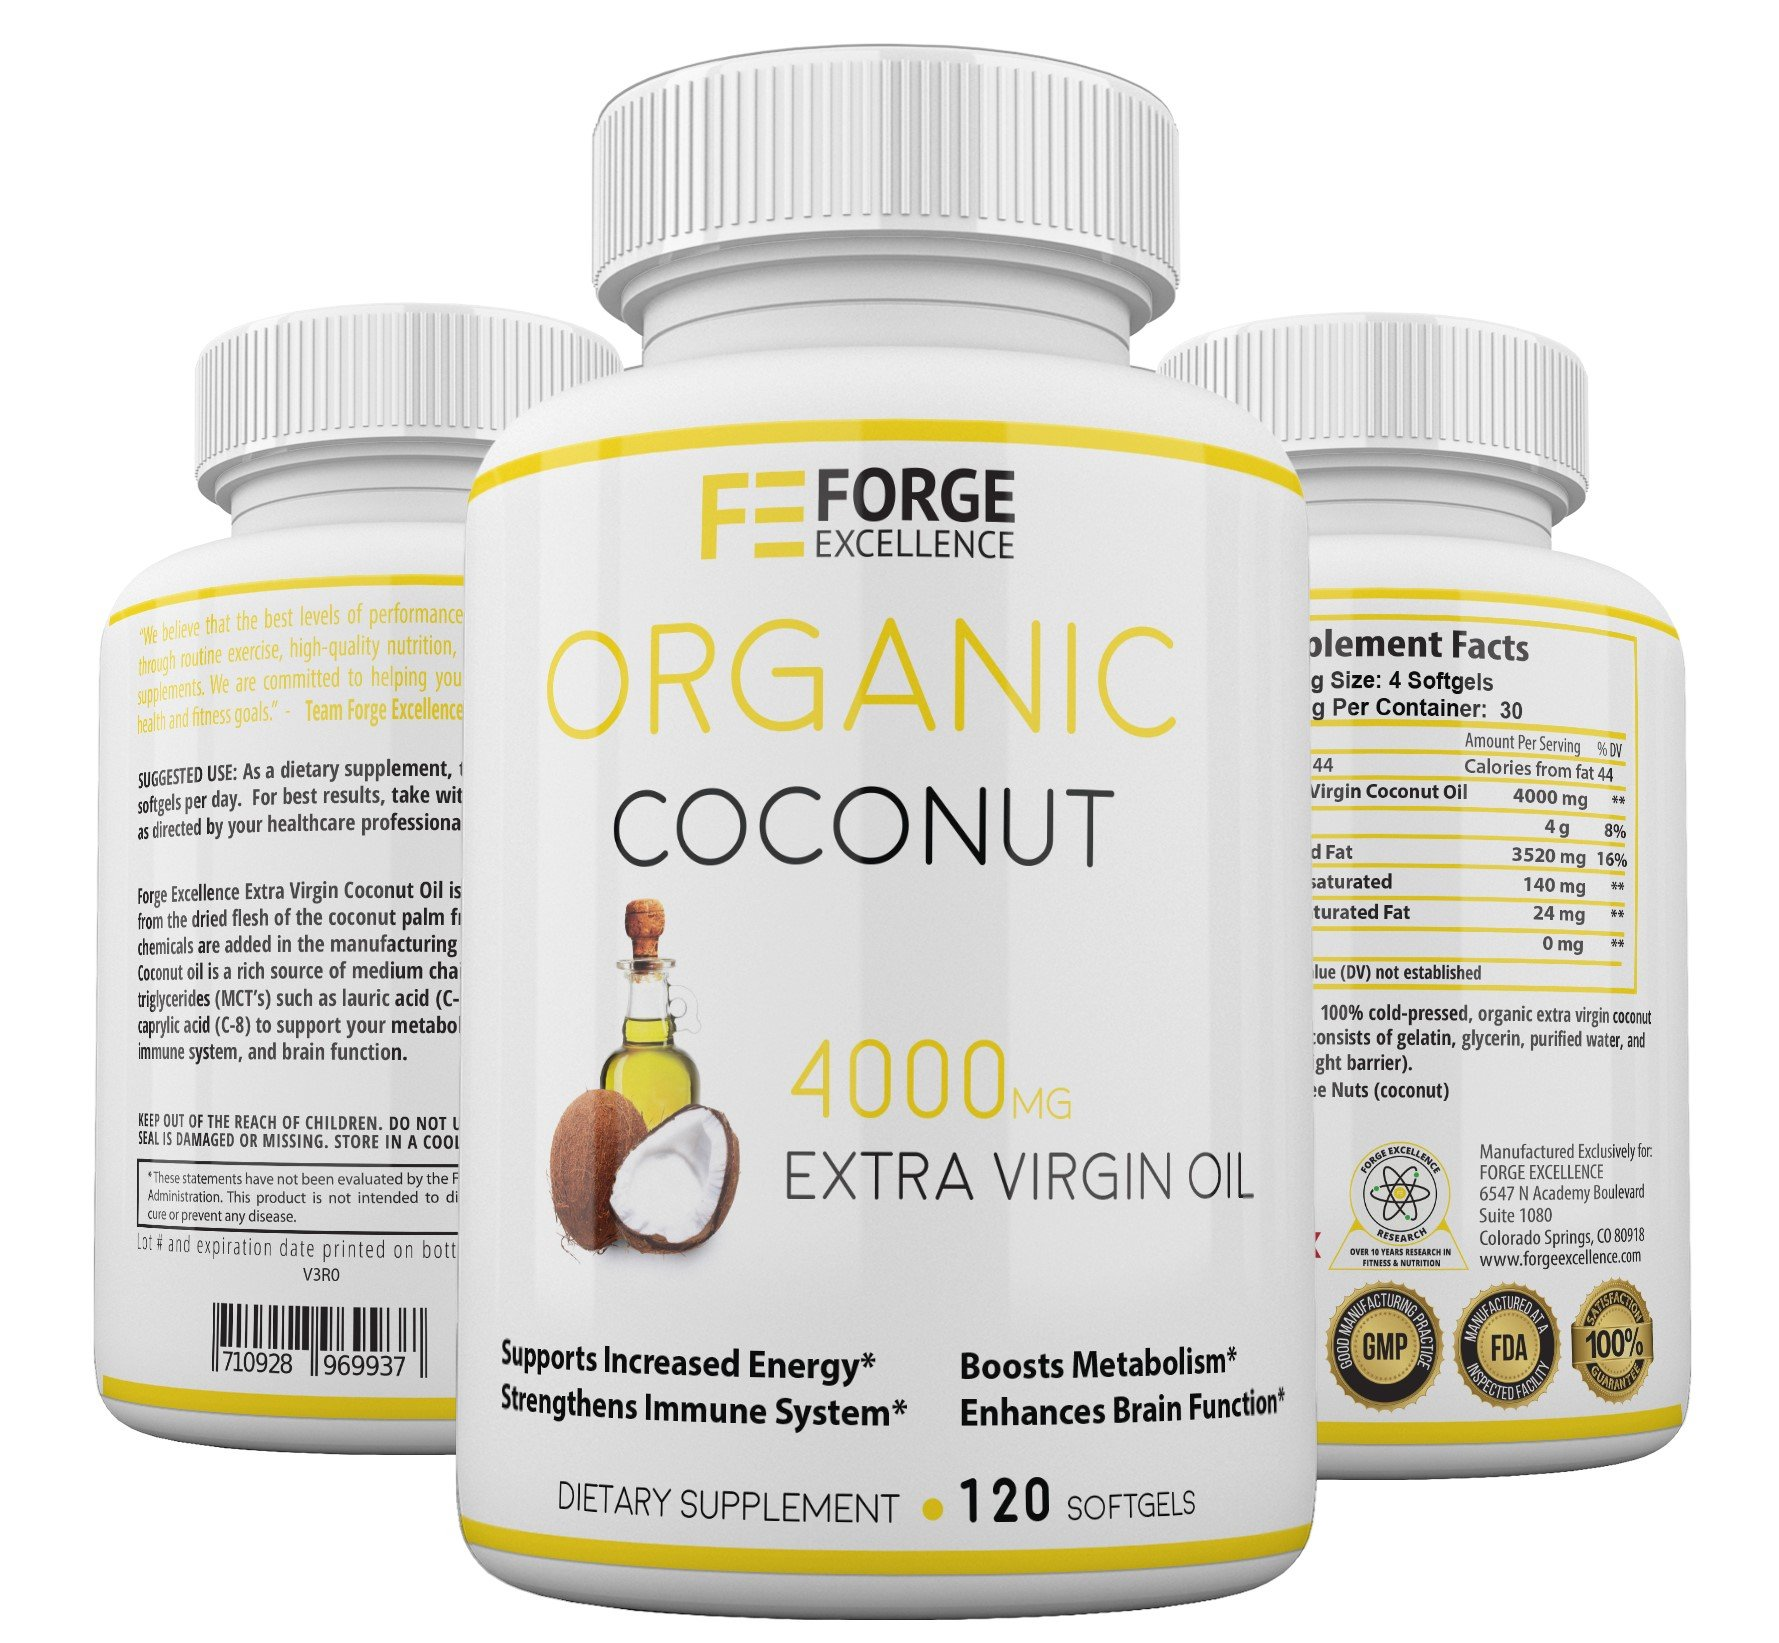 Forge Excellence - Extra Virgin, Pure, Unrefined Coconut Oil Dietary Supplement - GMO Free & FDA Approved - Boosts Your Energy, Metabolism, Brain Function & Immune System–Made in USA–120 Softgels